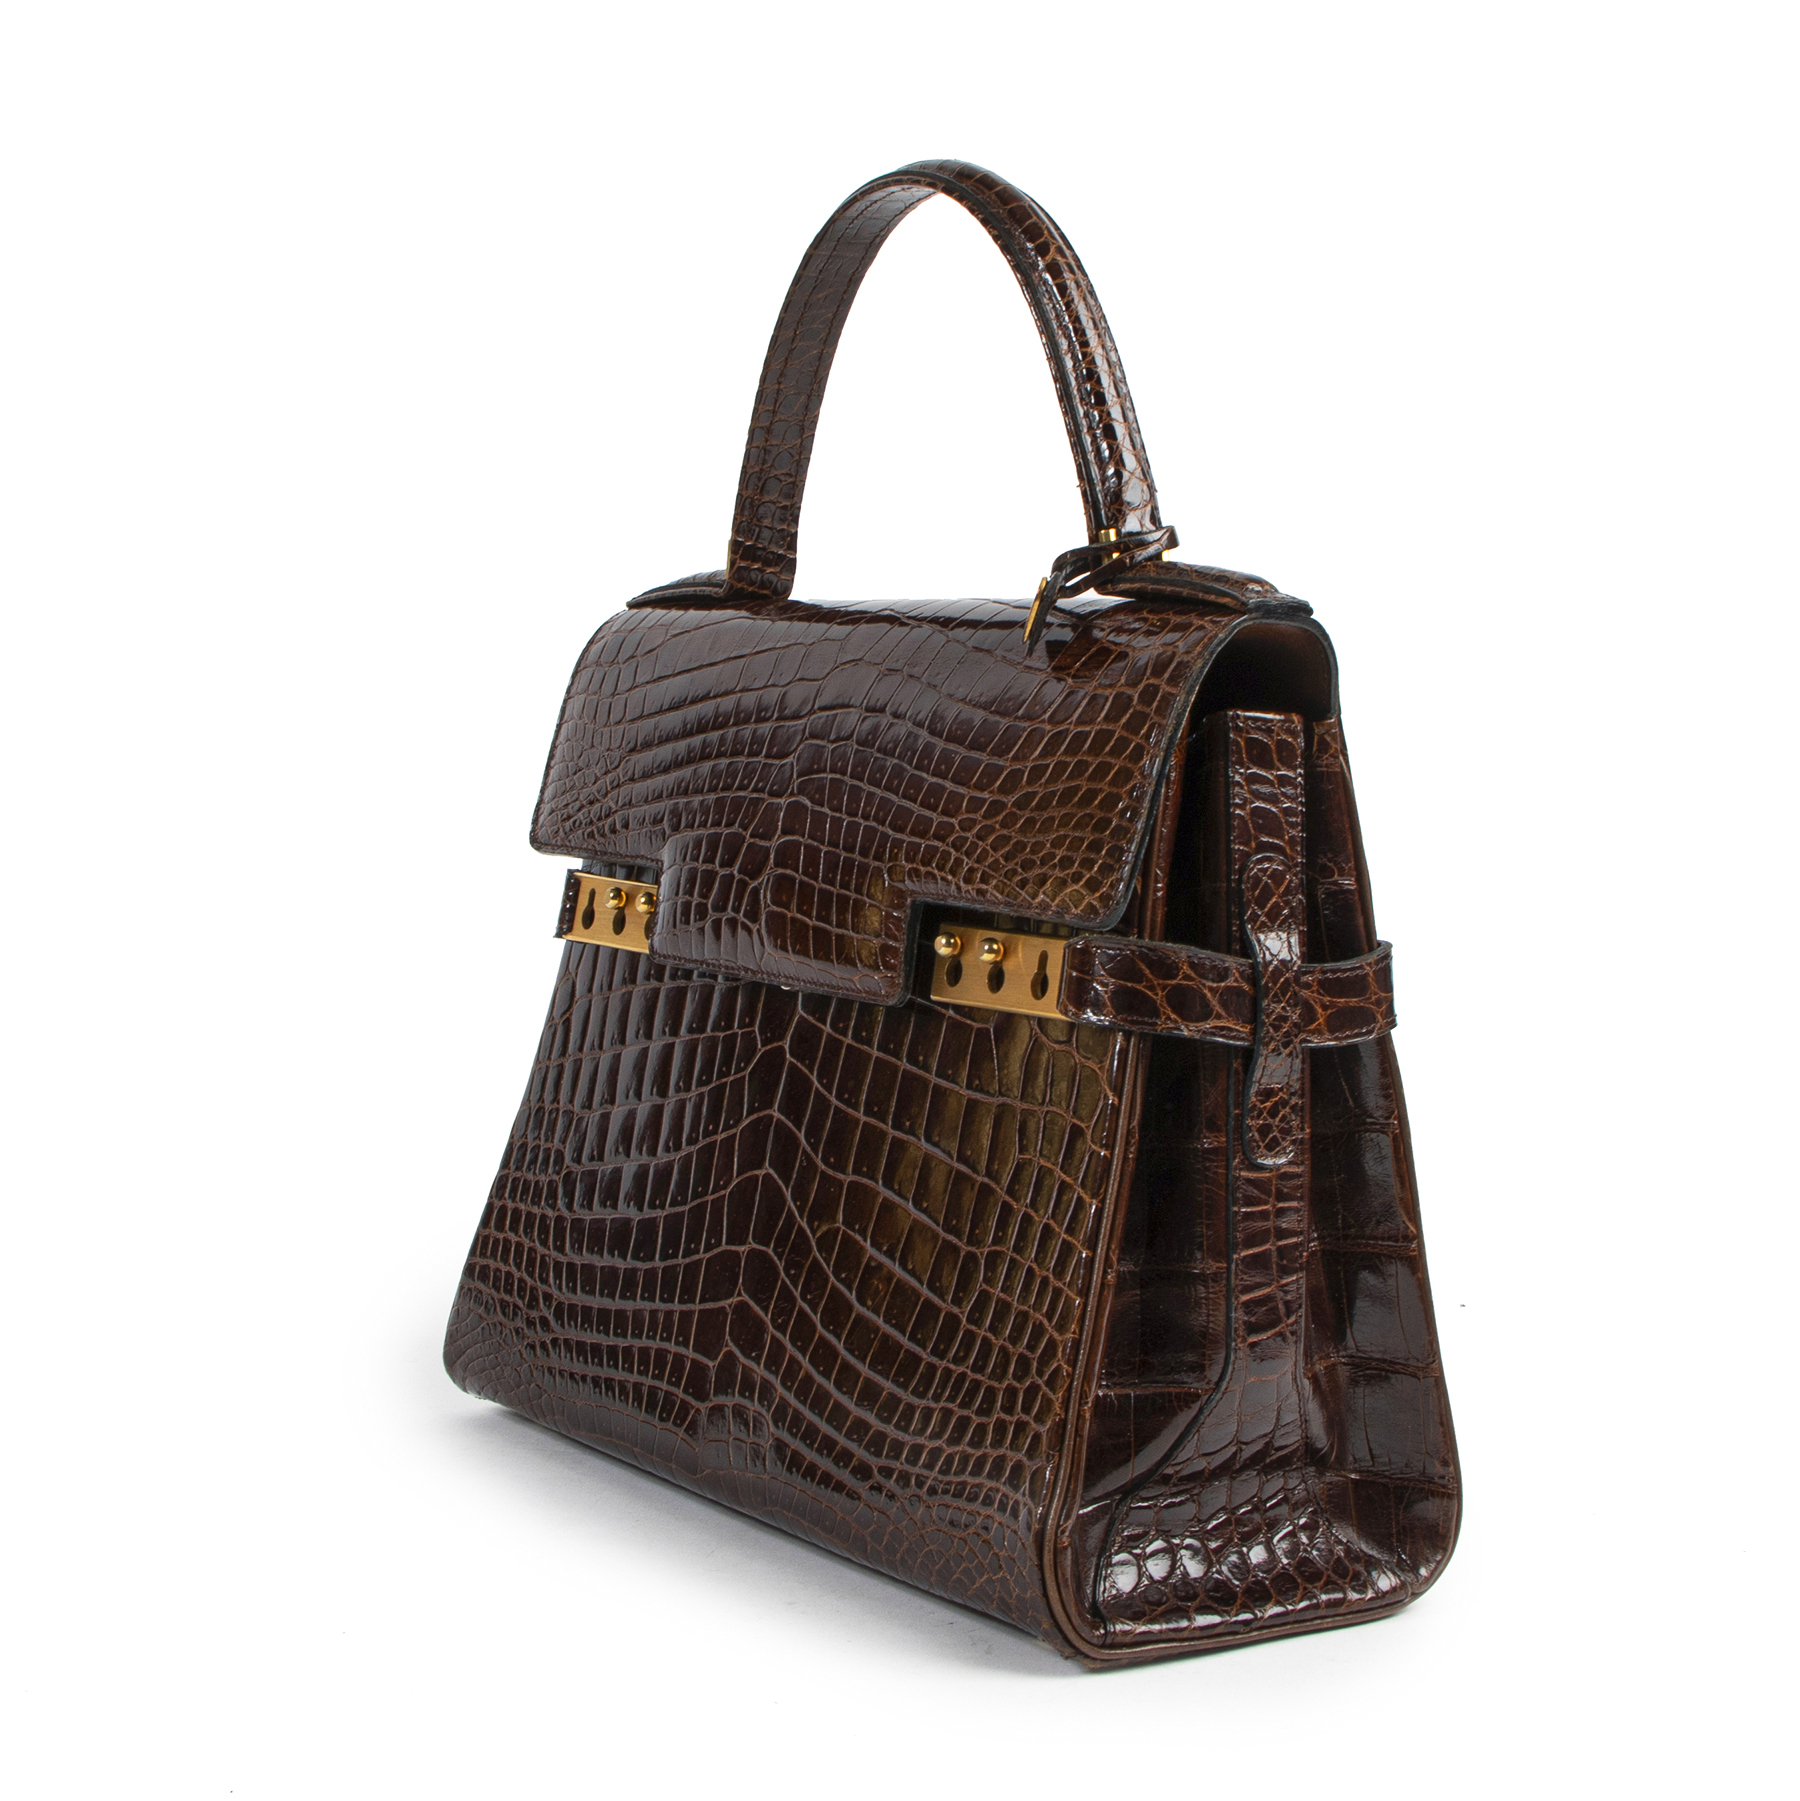 Delvaux Tempete Croco Brown GHW for the best price at Labellov secondhand